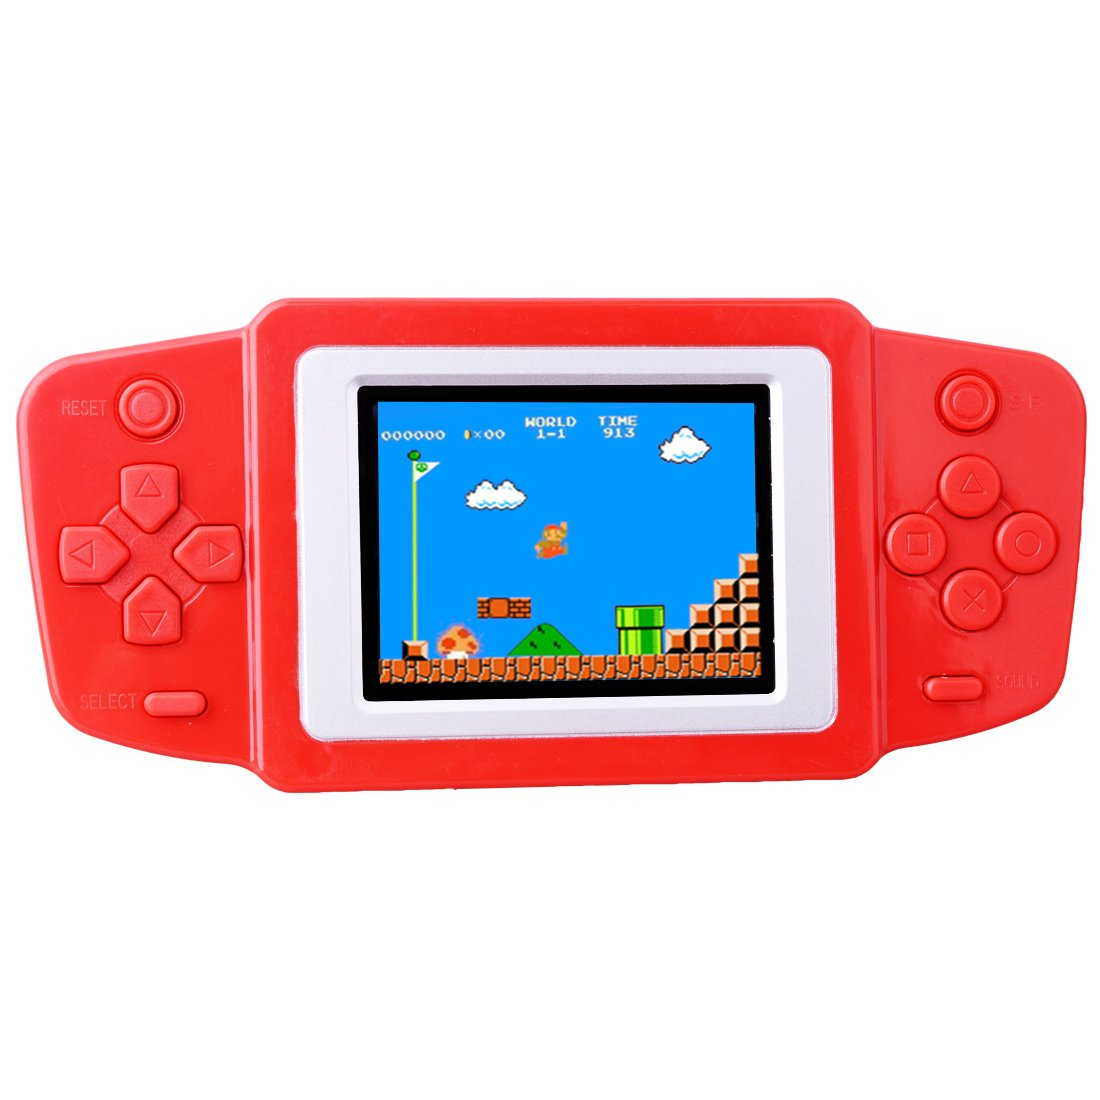 ZHISHAN Kids Retro Handheld Game Console Portable Game Player Built in 269 Classic Old Style Video Games with 2.5'' LCD Screen Boy Arcade Gaming System Unique Gift for Children (Red)